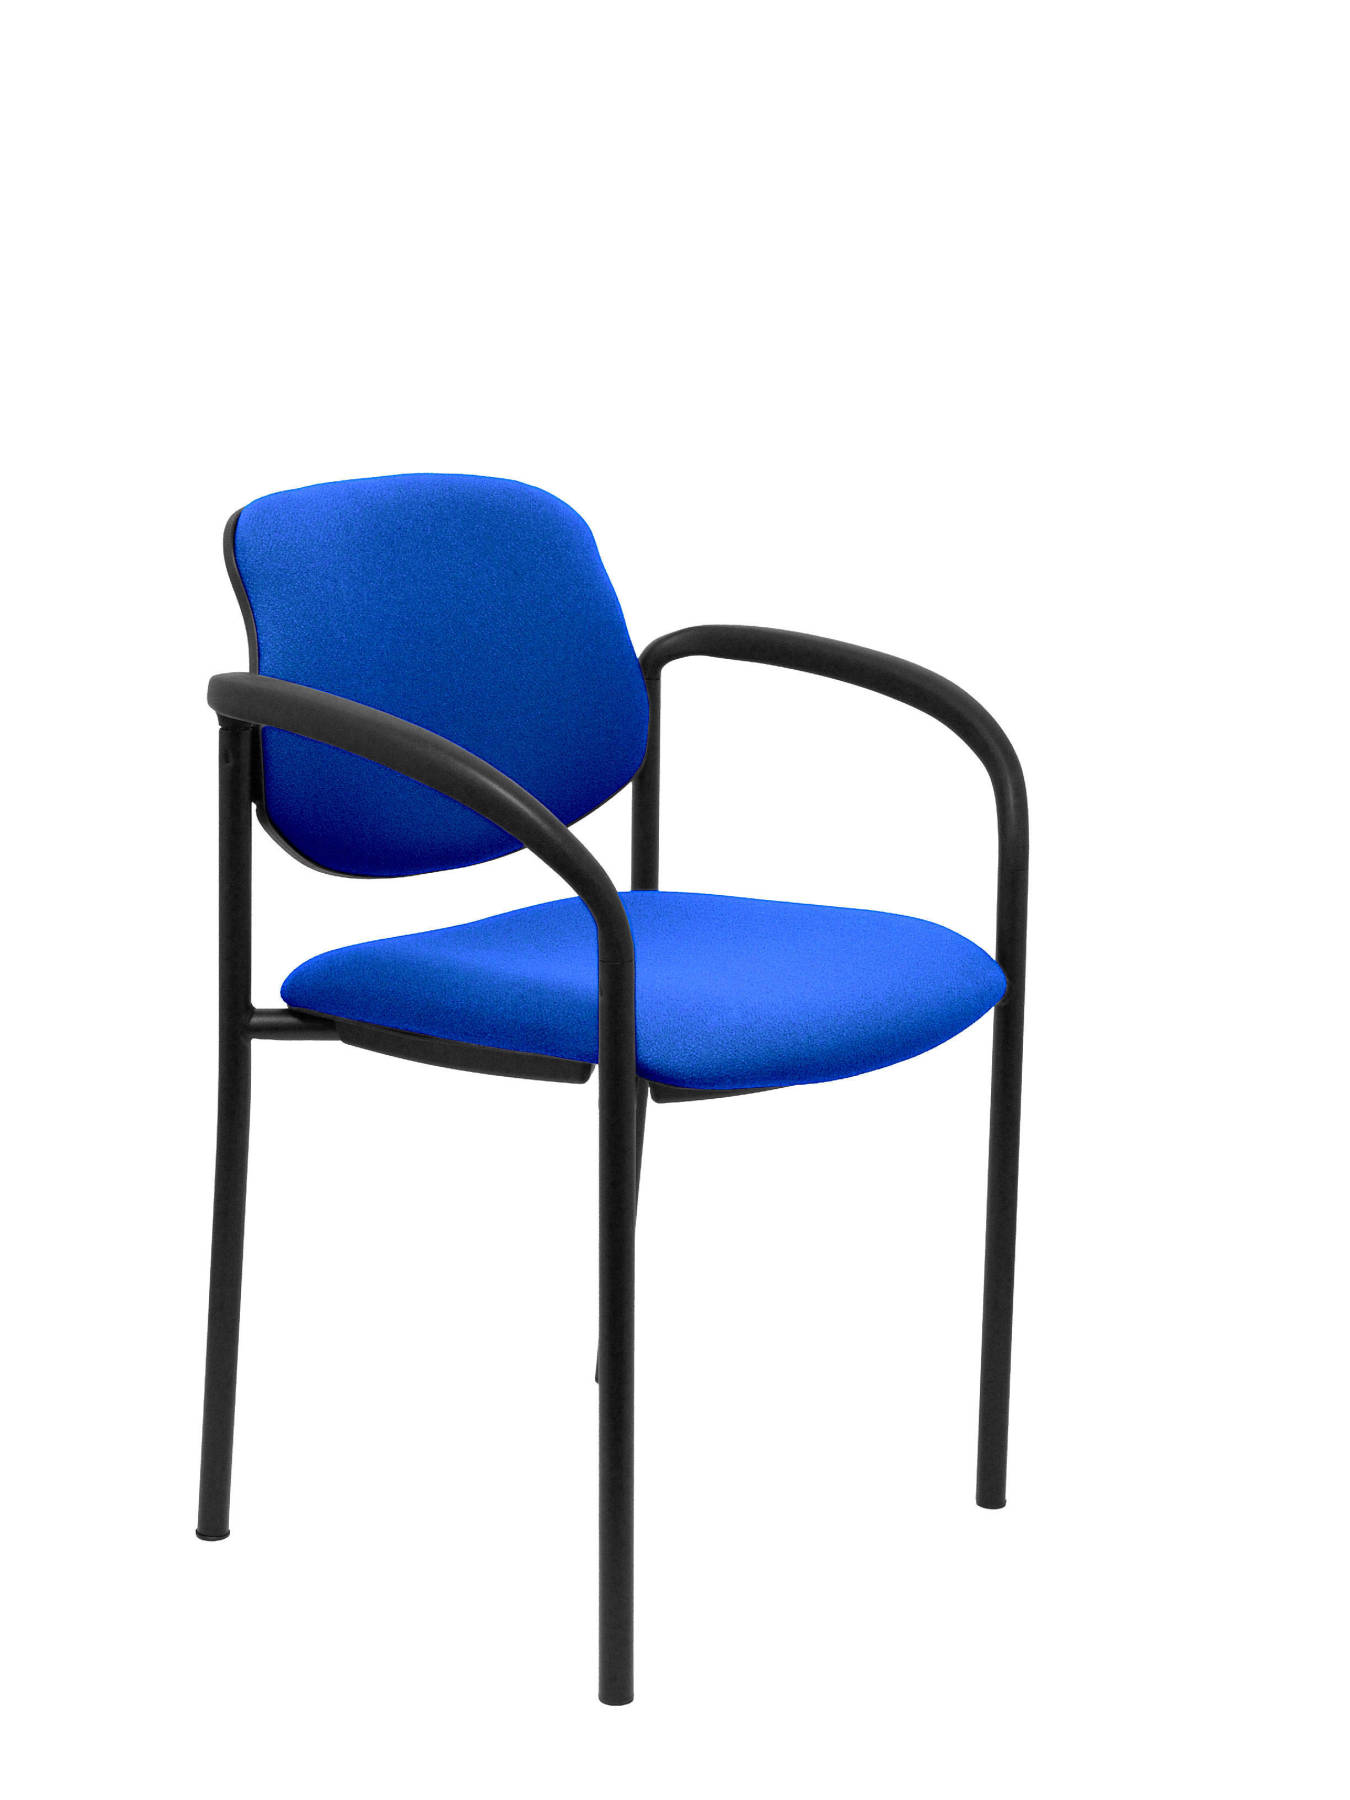 Visitor Chair 4's Topsy, With Arms And Estructrua Negro-up Seat And Backstop Upholstered In BALI Tissue Color Blue Mari